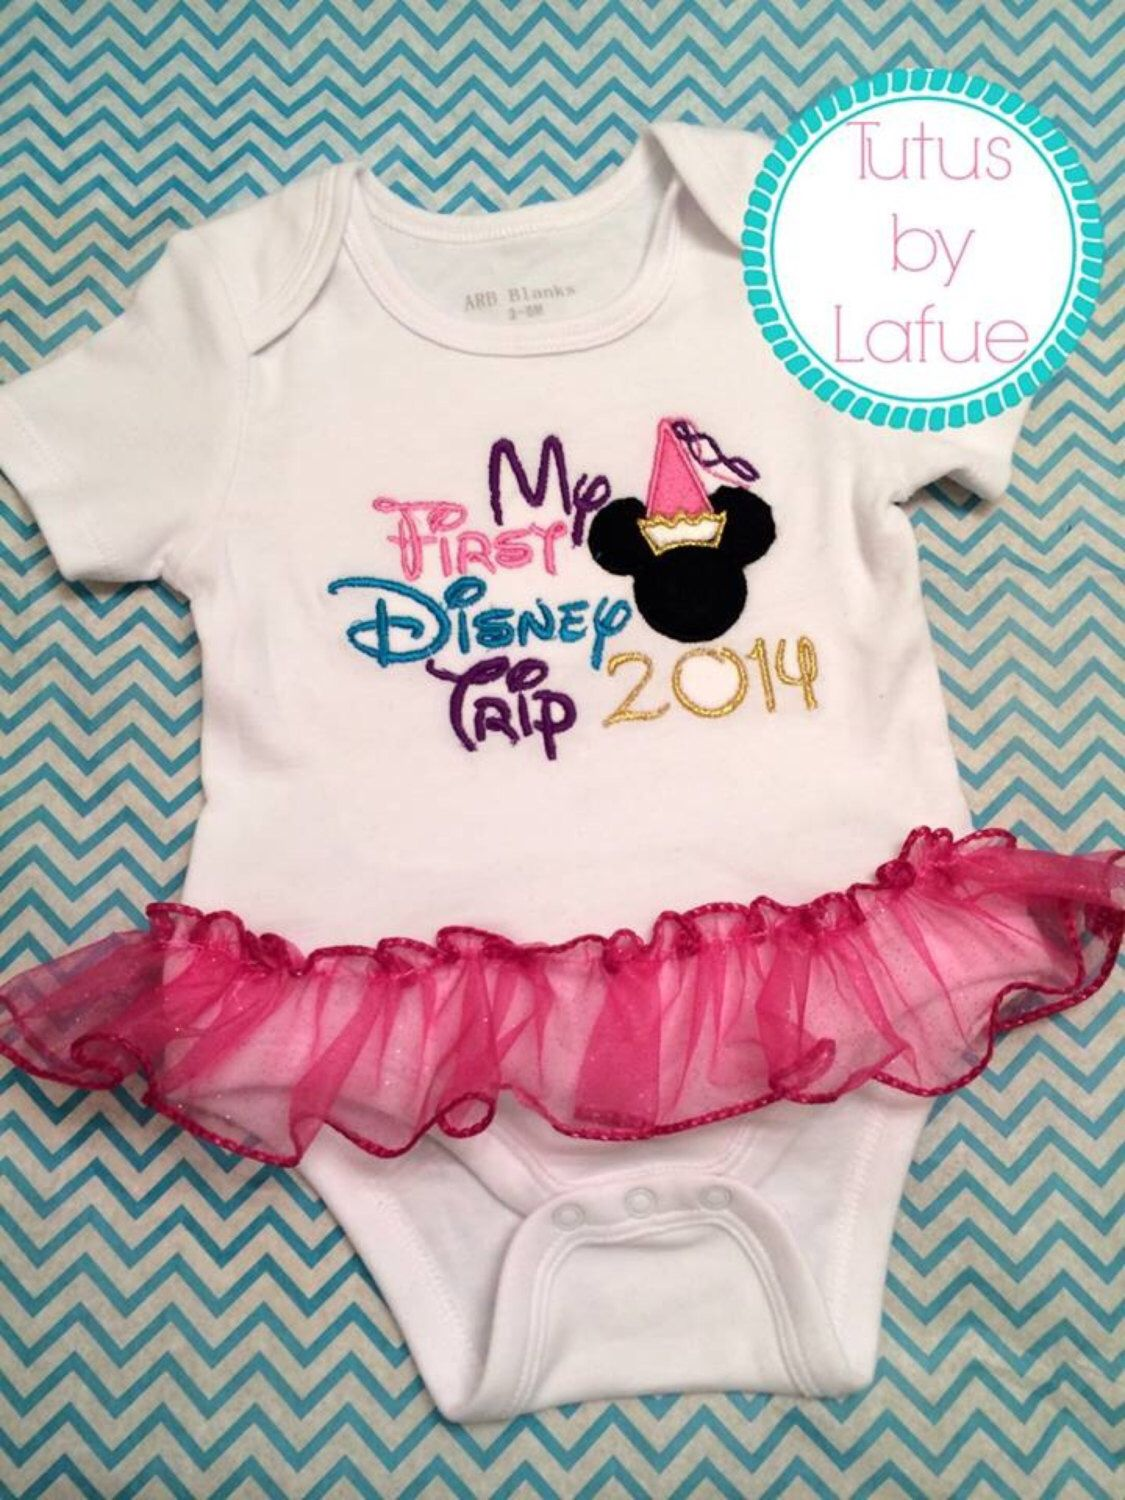 My First Trip to Disney Romper/Shirt by TutusbyLafue on Etsy https://www.etsy.com/listing/190414819/my-first-trip-to-disney-rompershirt